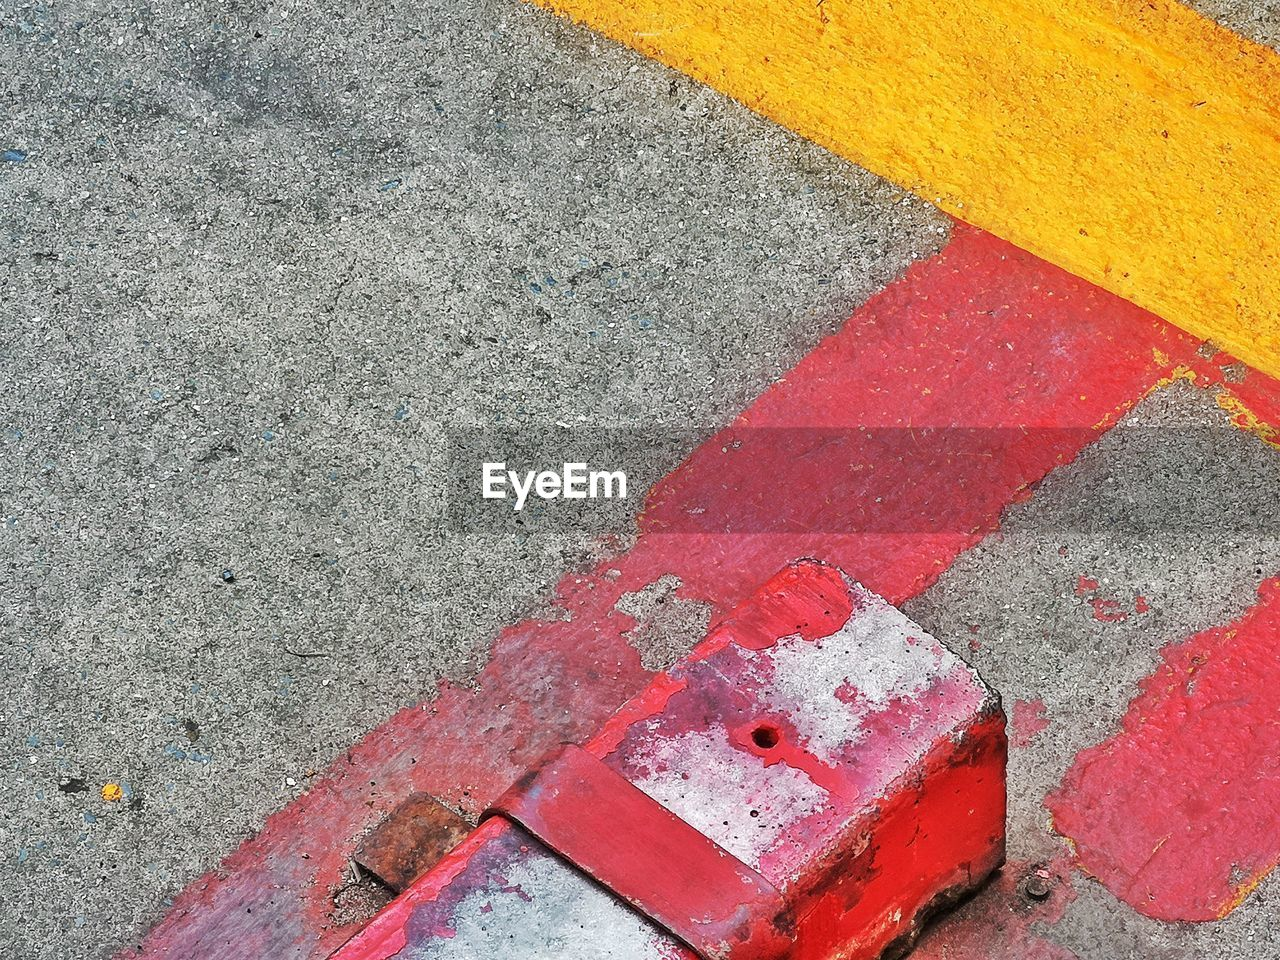 red, no people, close-up, day, high angle view, textured, multi colored, outdoors, road, city, backgrounds, street, rough, concrete, orange color, transportation, directly above, metal, wall - building feature, shape